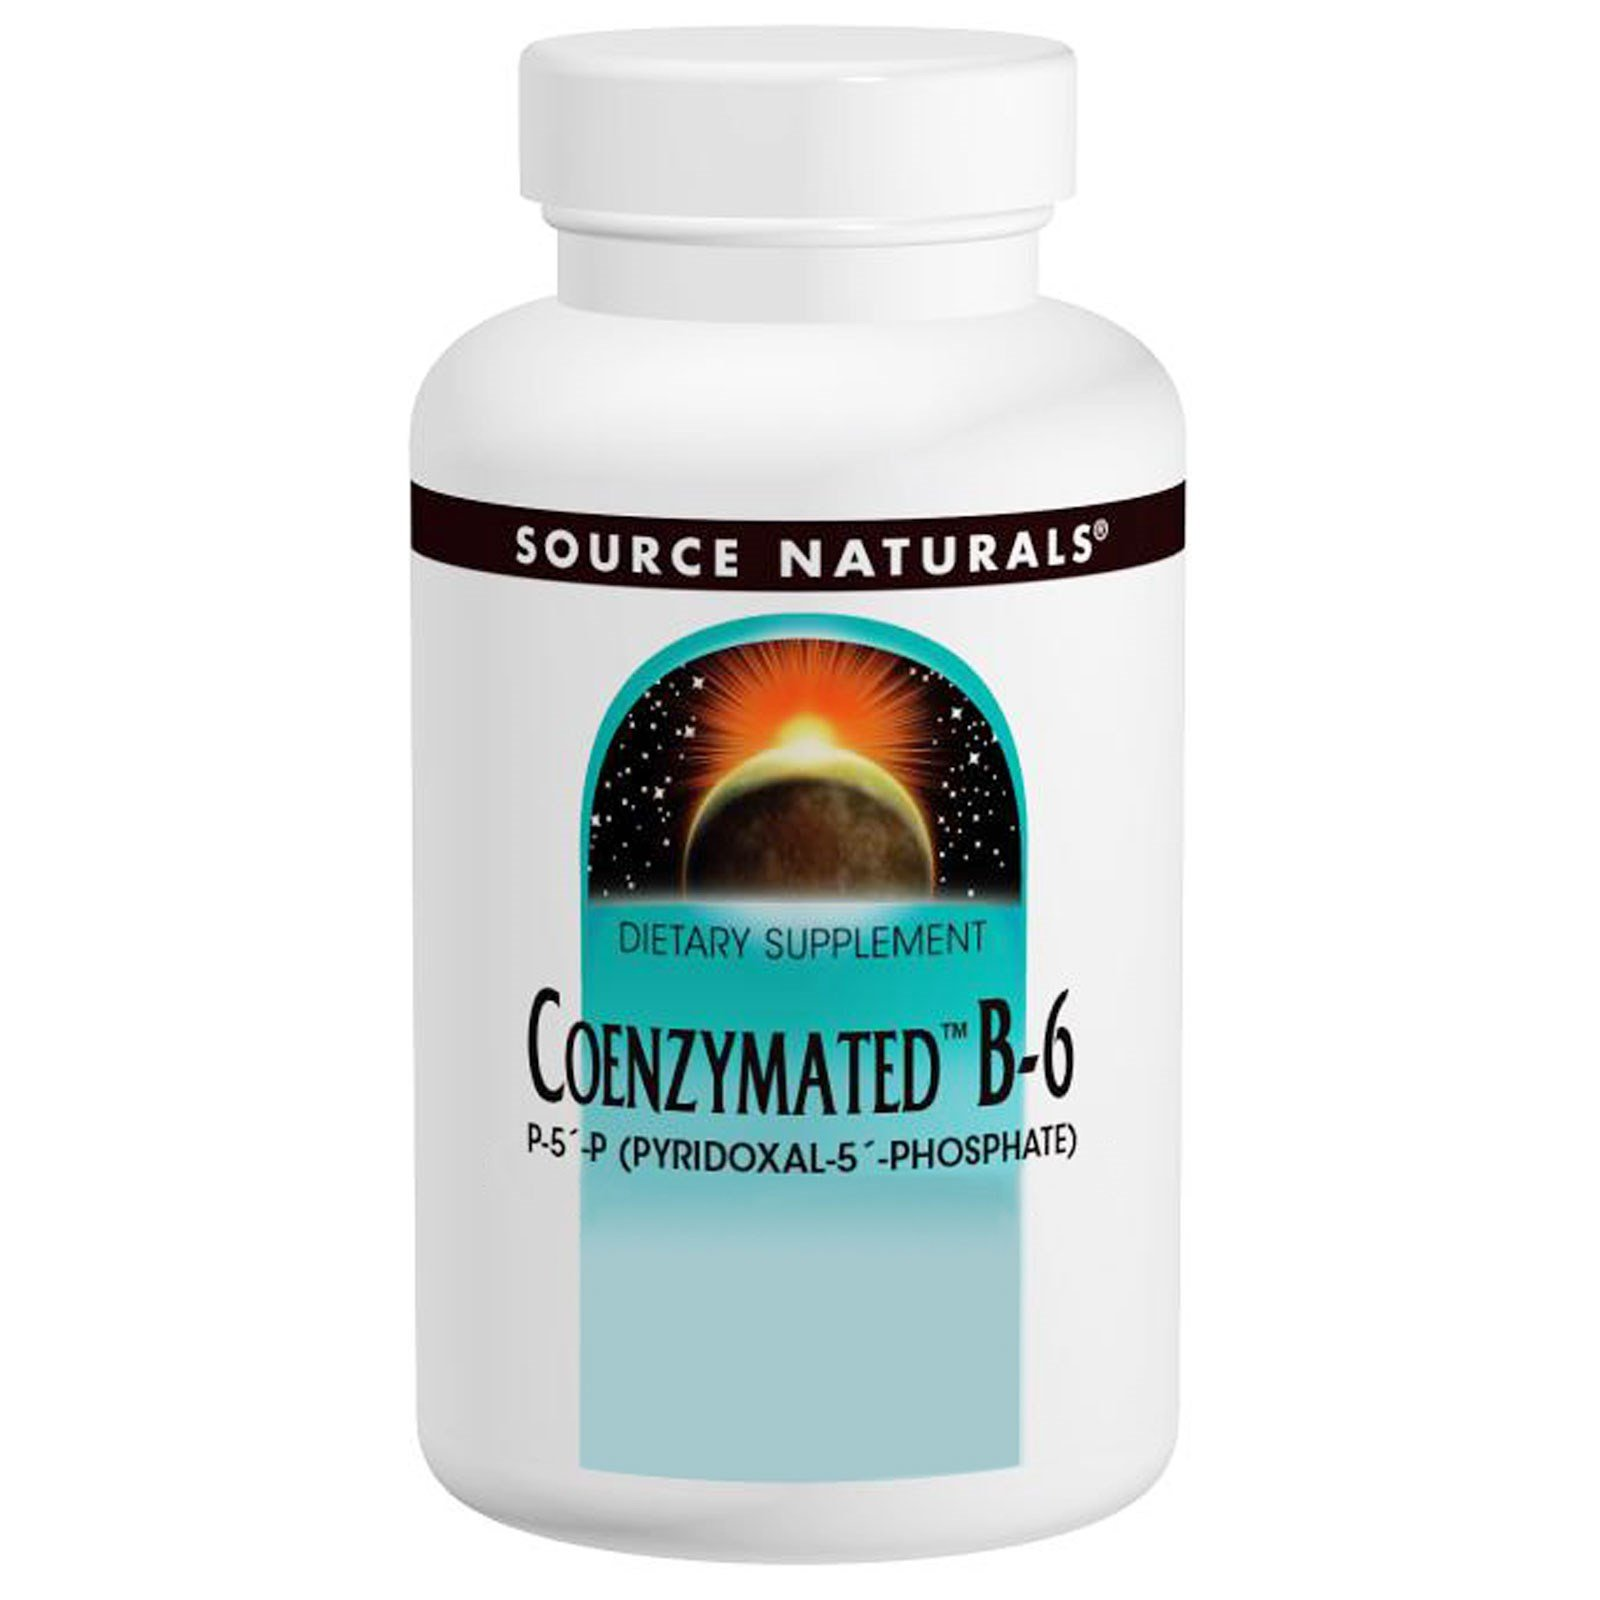 Coenzymated B-6 Sublingual, 25 mg, 120 Tabs by Source Naturals (Pack of 4)